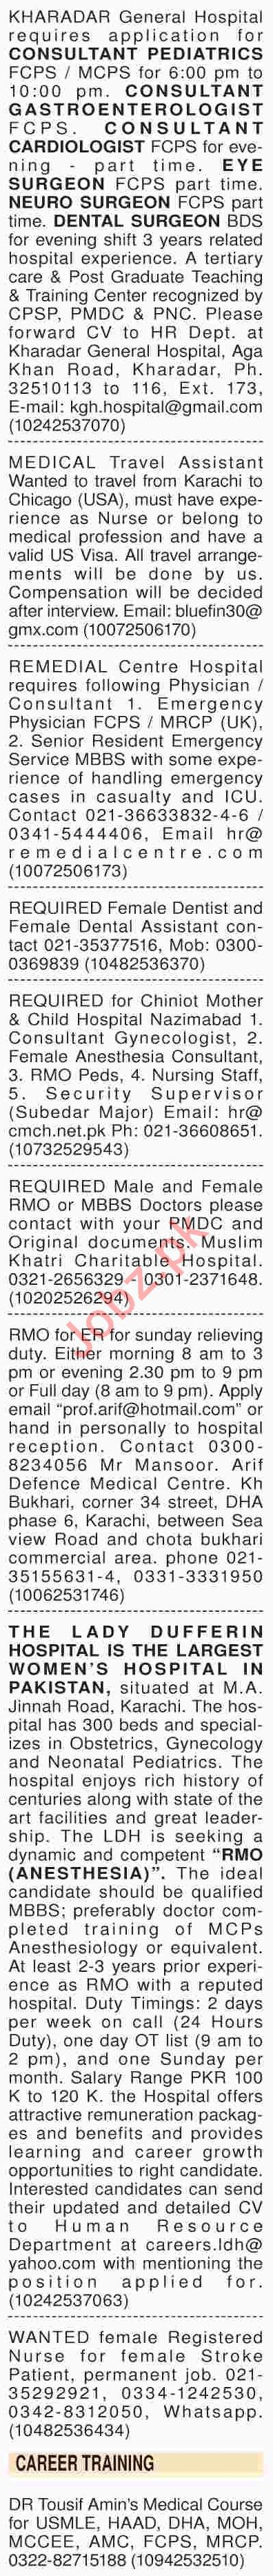 Dawn Sunday Classified Ads 17th March 2019 Medical Staff